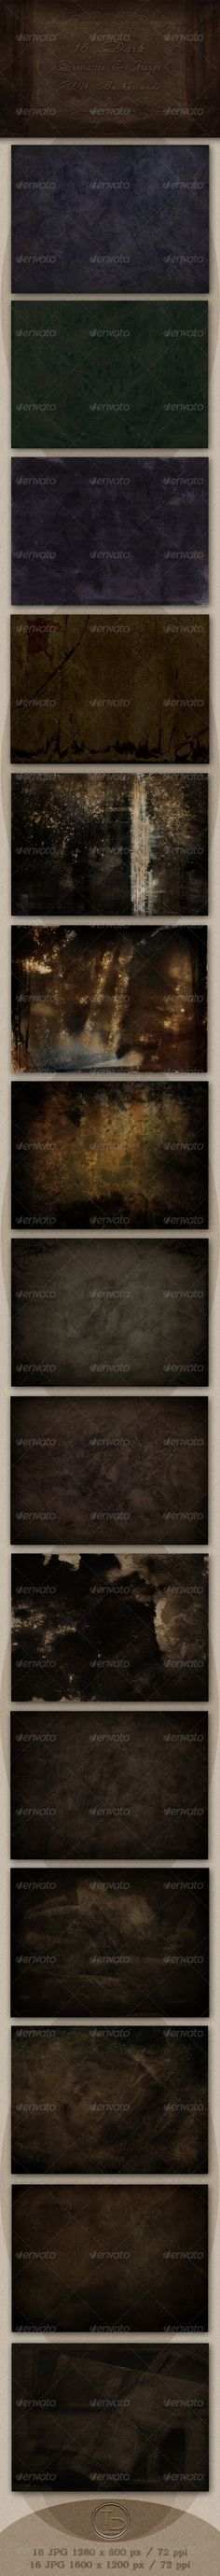 16 Dark Decorative & Grunge Web Backgrounds